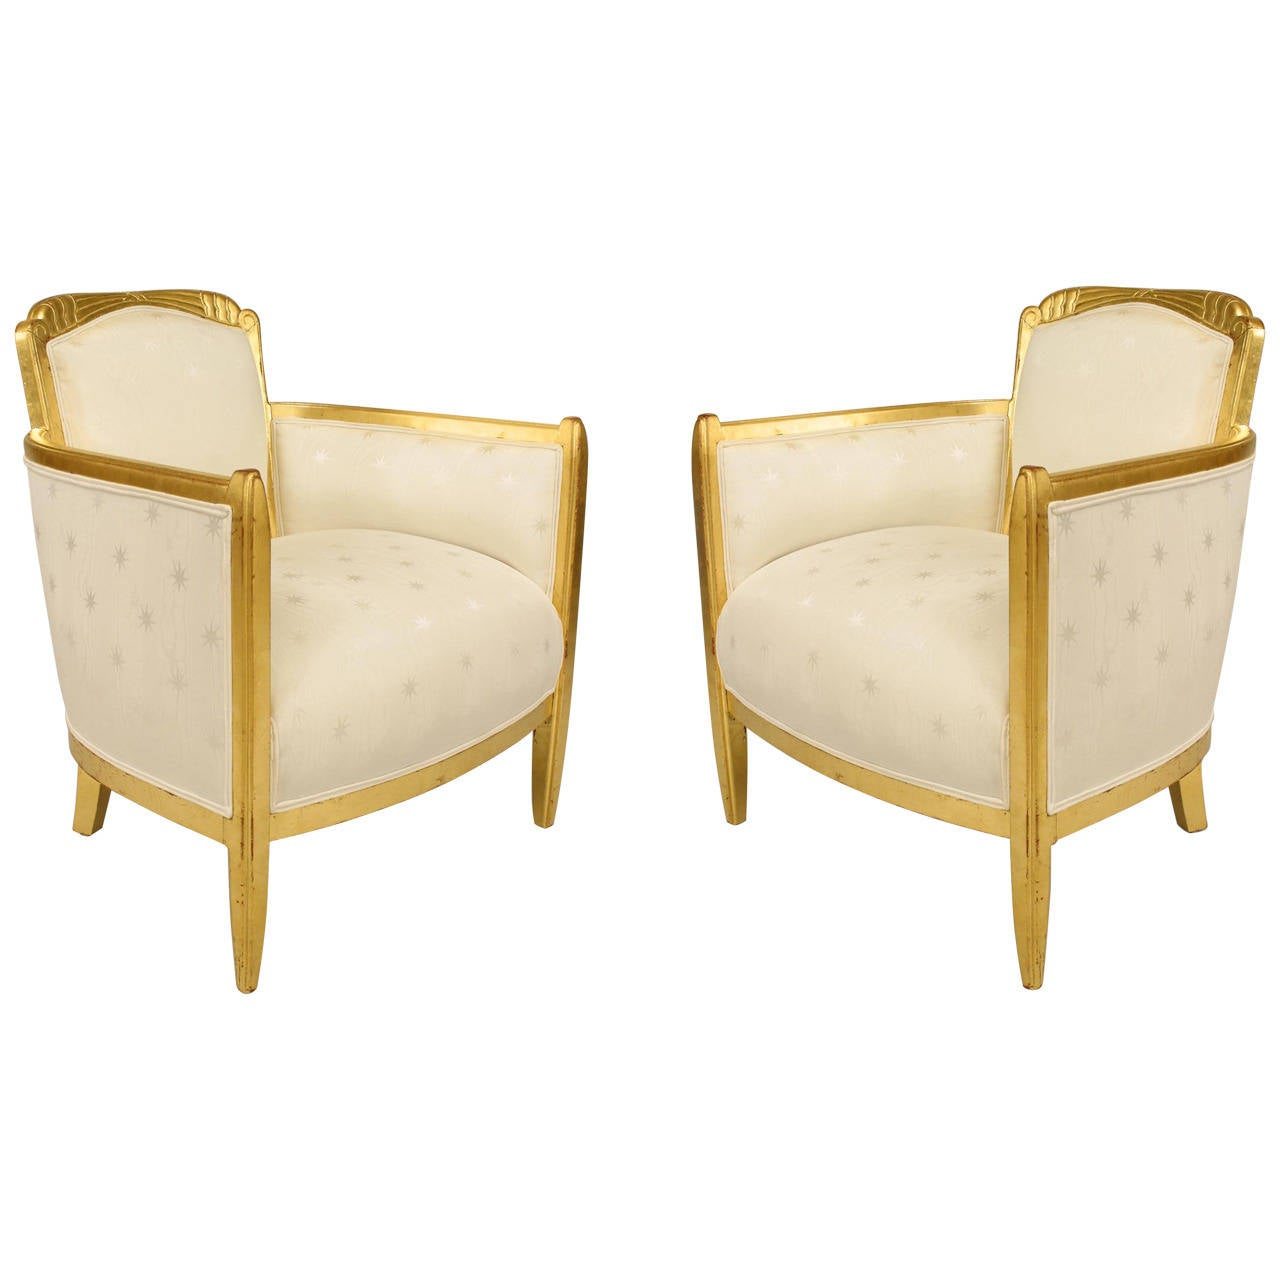 French art deco three piece upholstered giltwood salon set for 2nd hand salon furniture sale